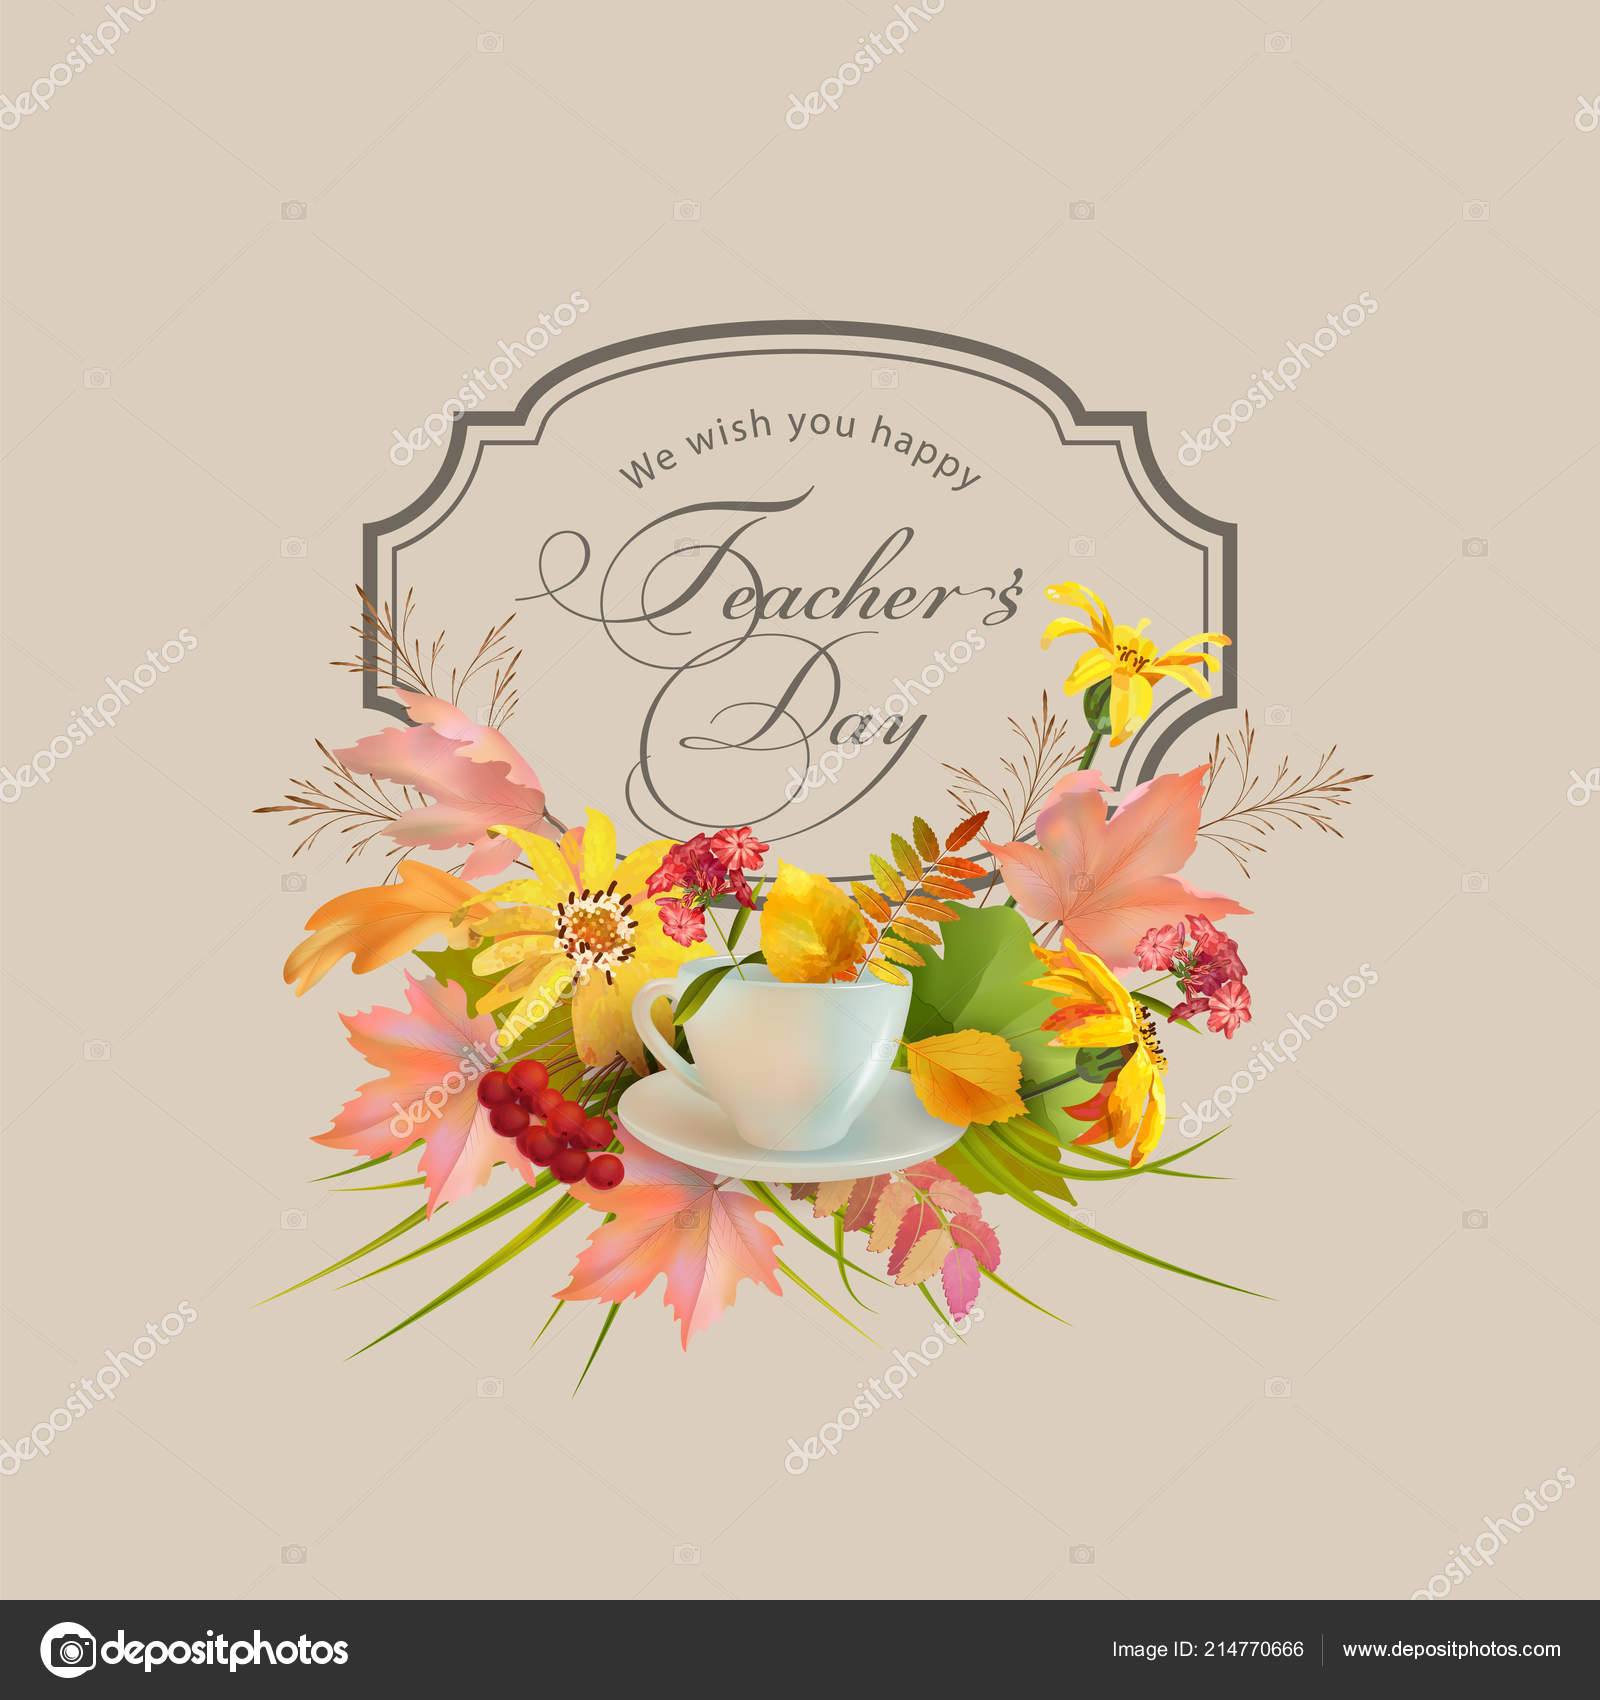 Teachers day greeting card autumn leaves flowers happy teachers day teachers day greeting card autumn leaves flowers happy teachers day stock vector m4hsunfo